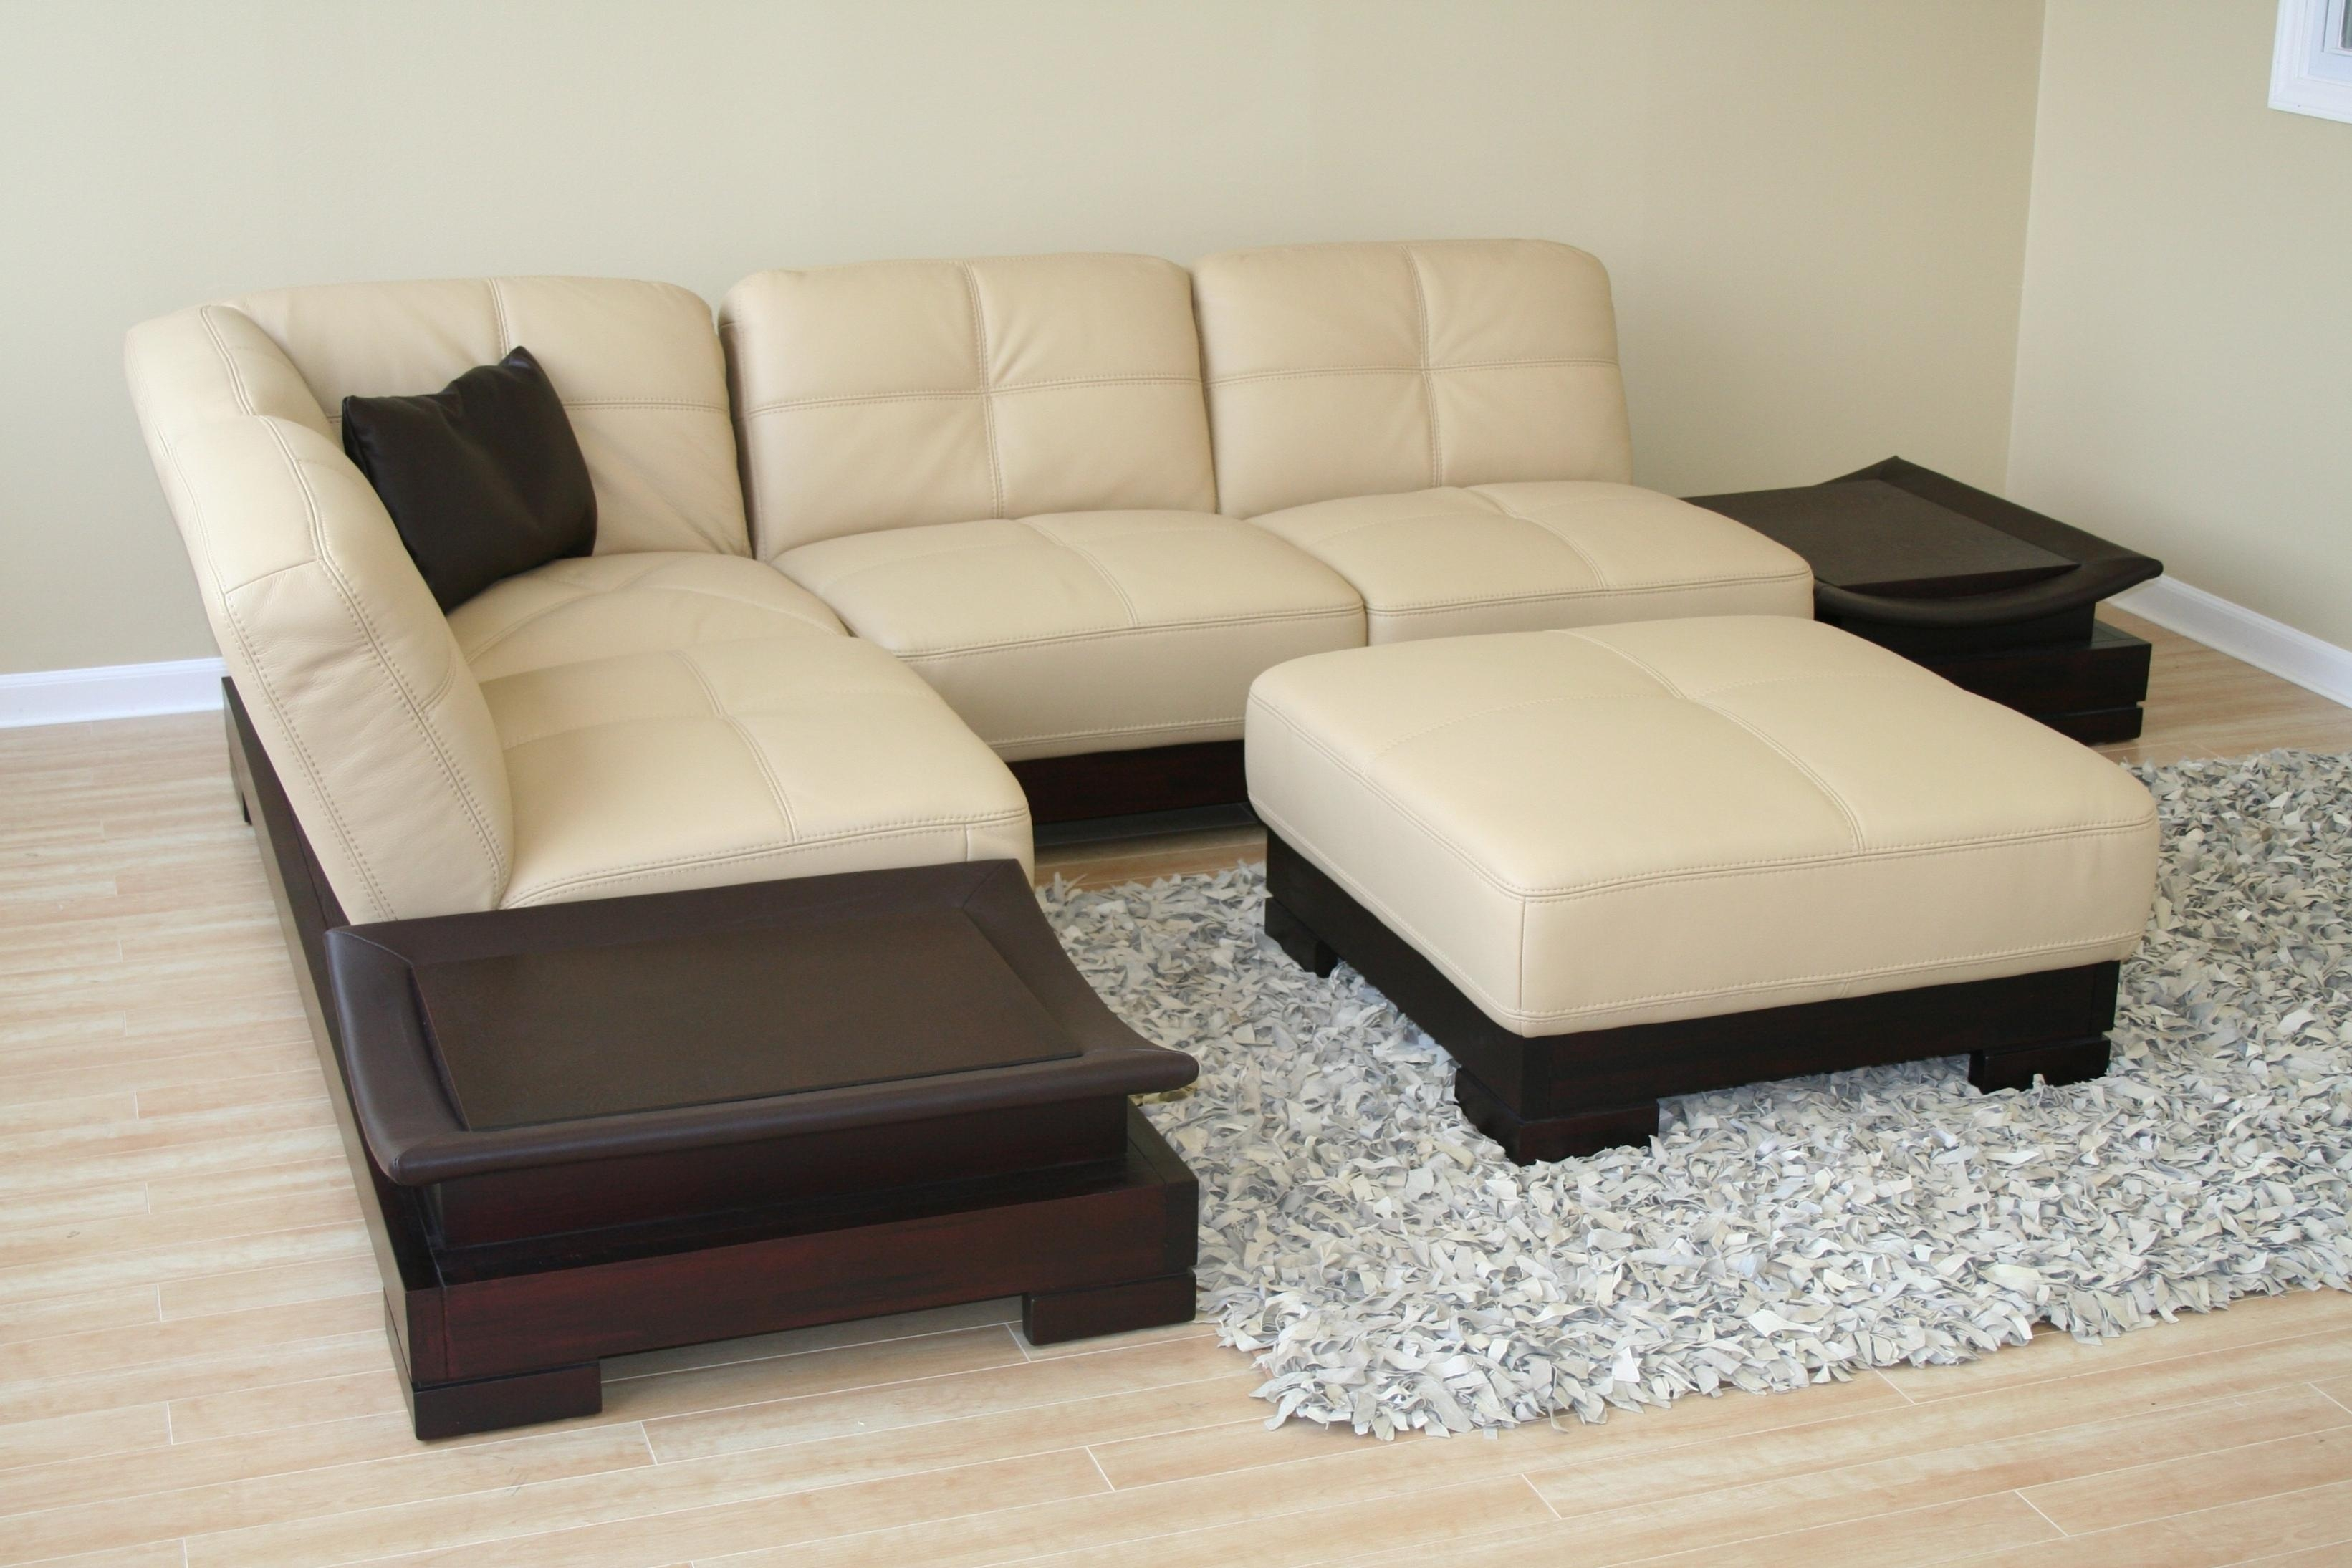 The Most Popular Small Scale Sectional Sofa 26 In Small Leather Intended For Small Scale Leather Sectional Sofas (Image 18 of 20)